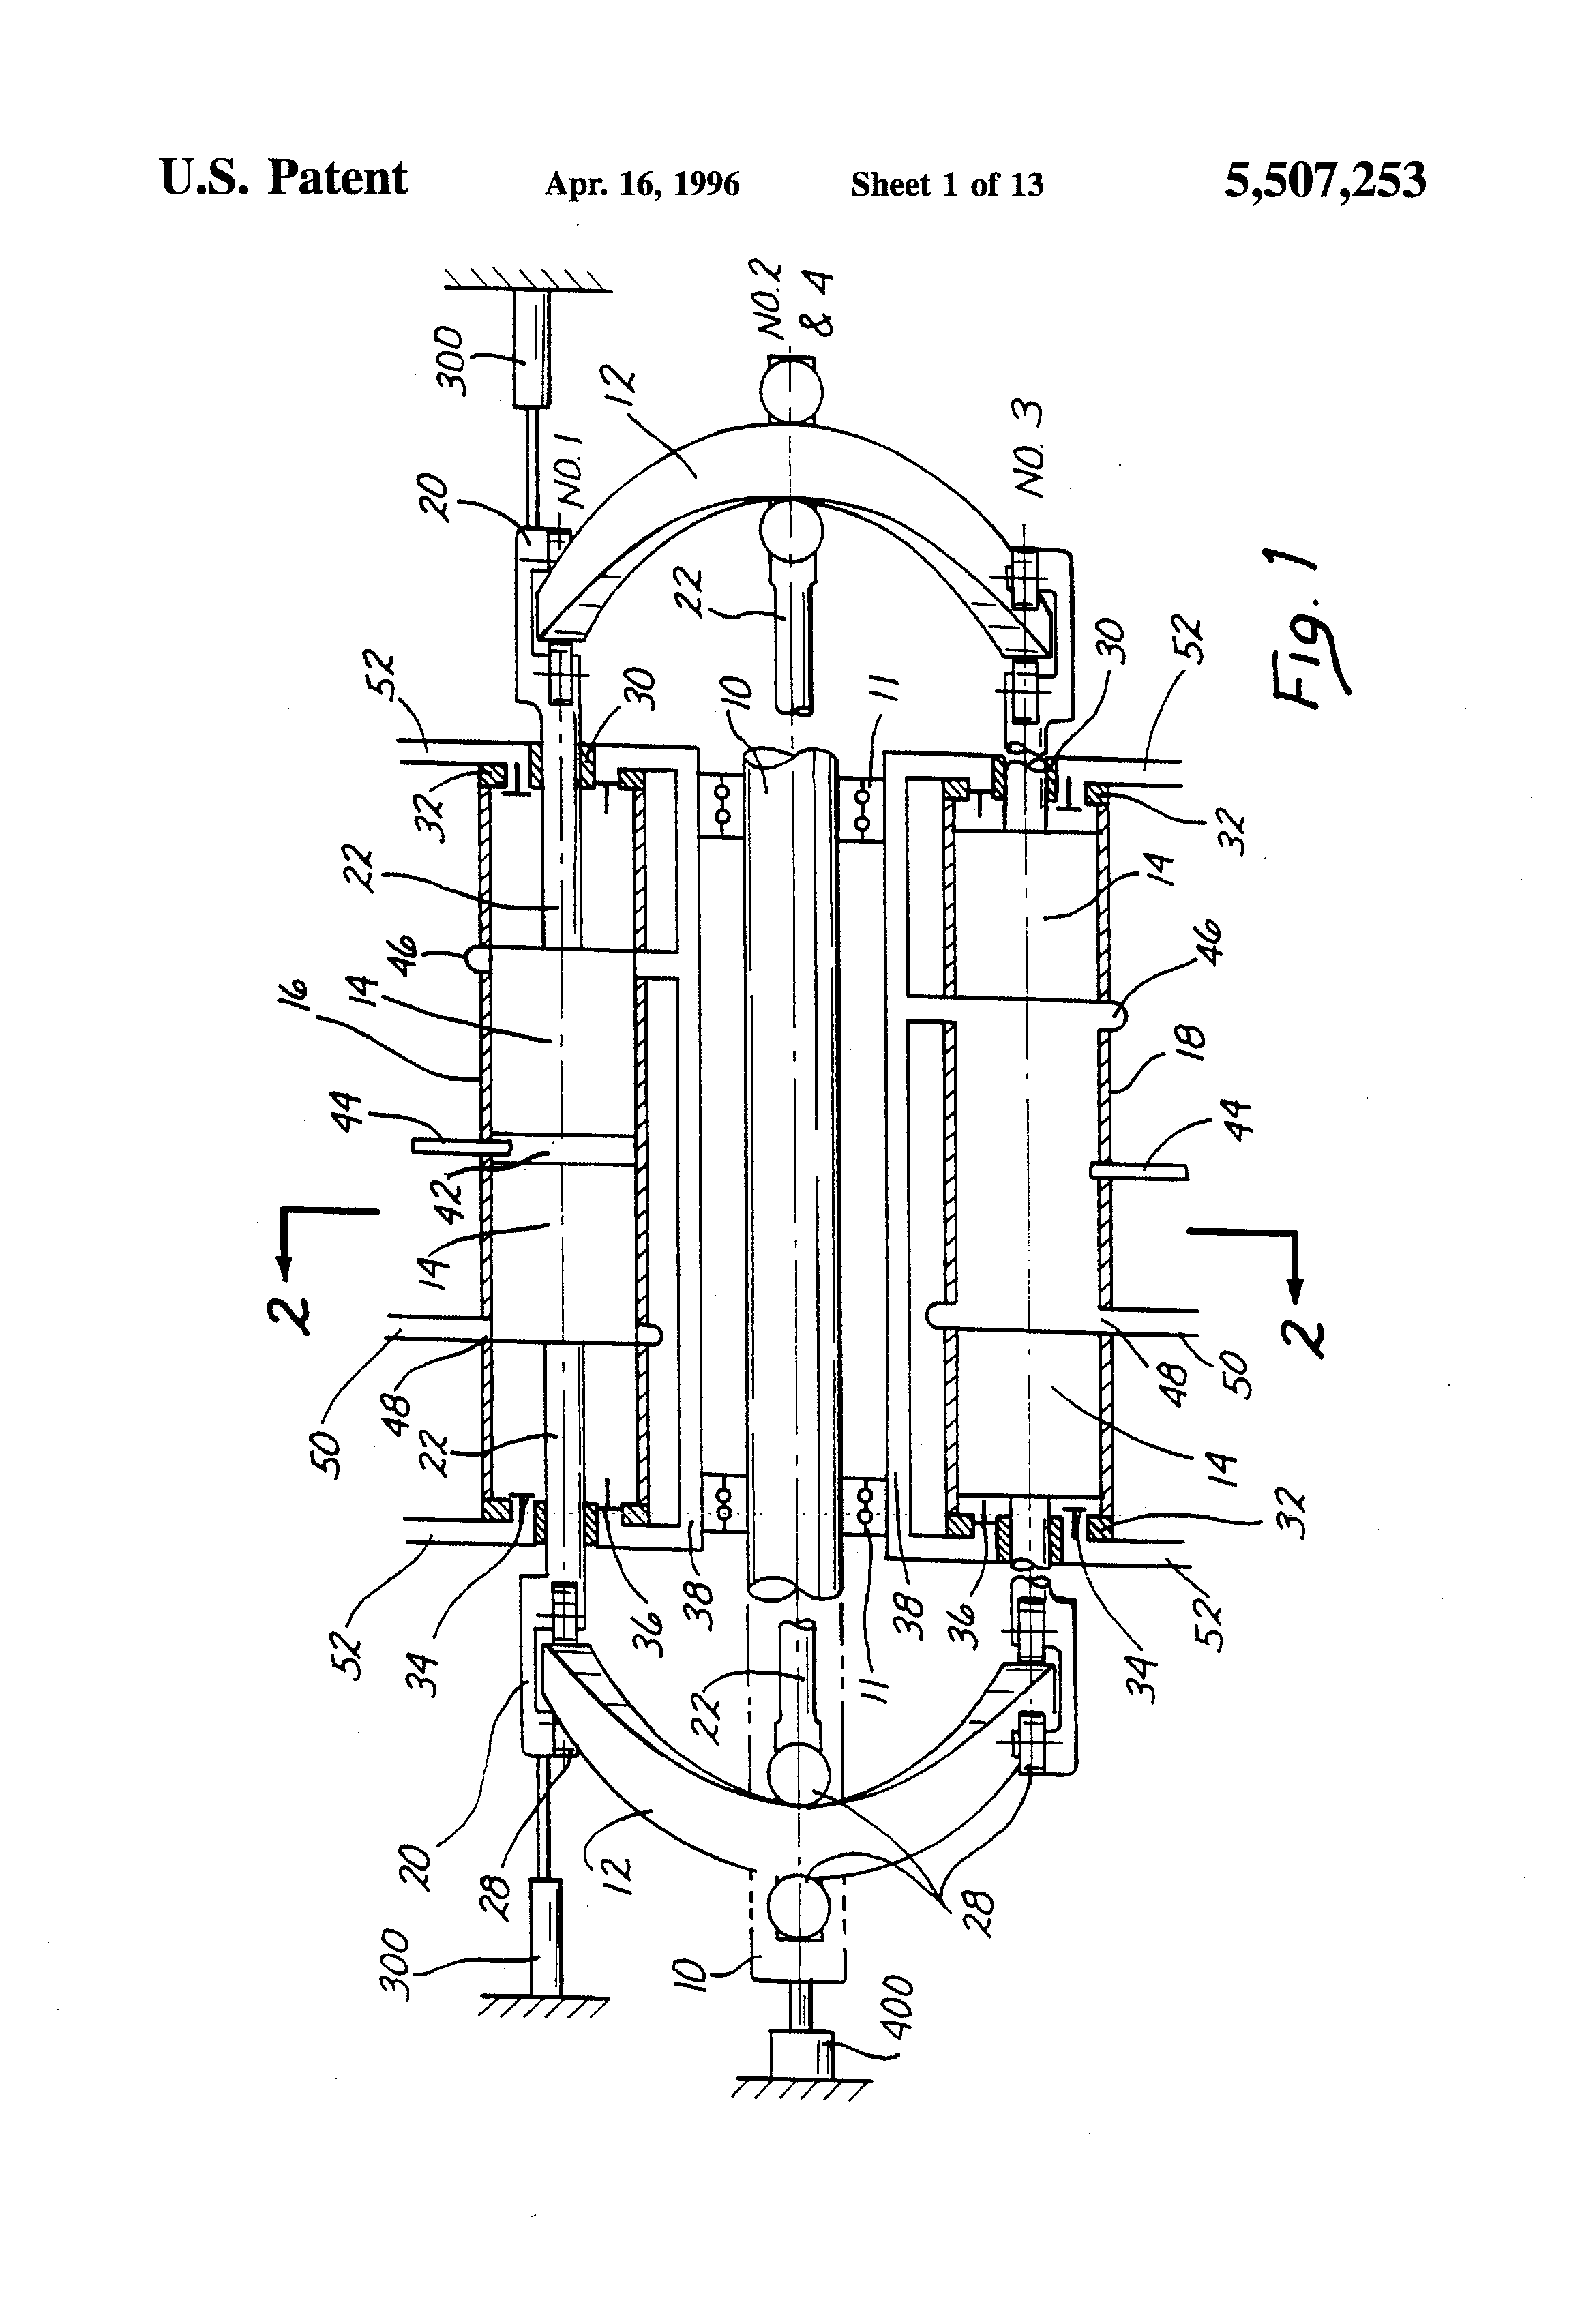 engine diagram 5 0 engine 1989 town car patent us5507253 - adiabatic, two-stroke cycle engine ... engine diagram pistons schedule #7